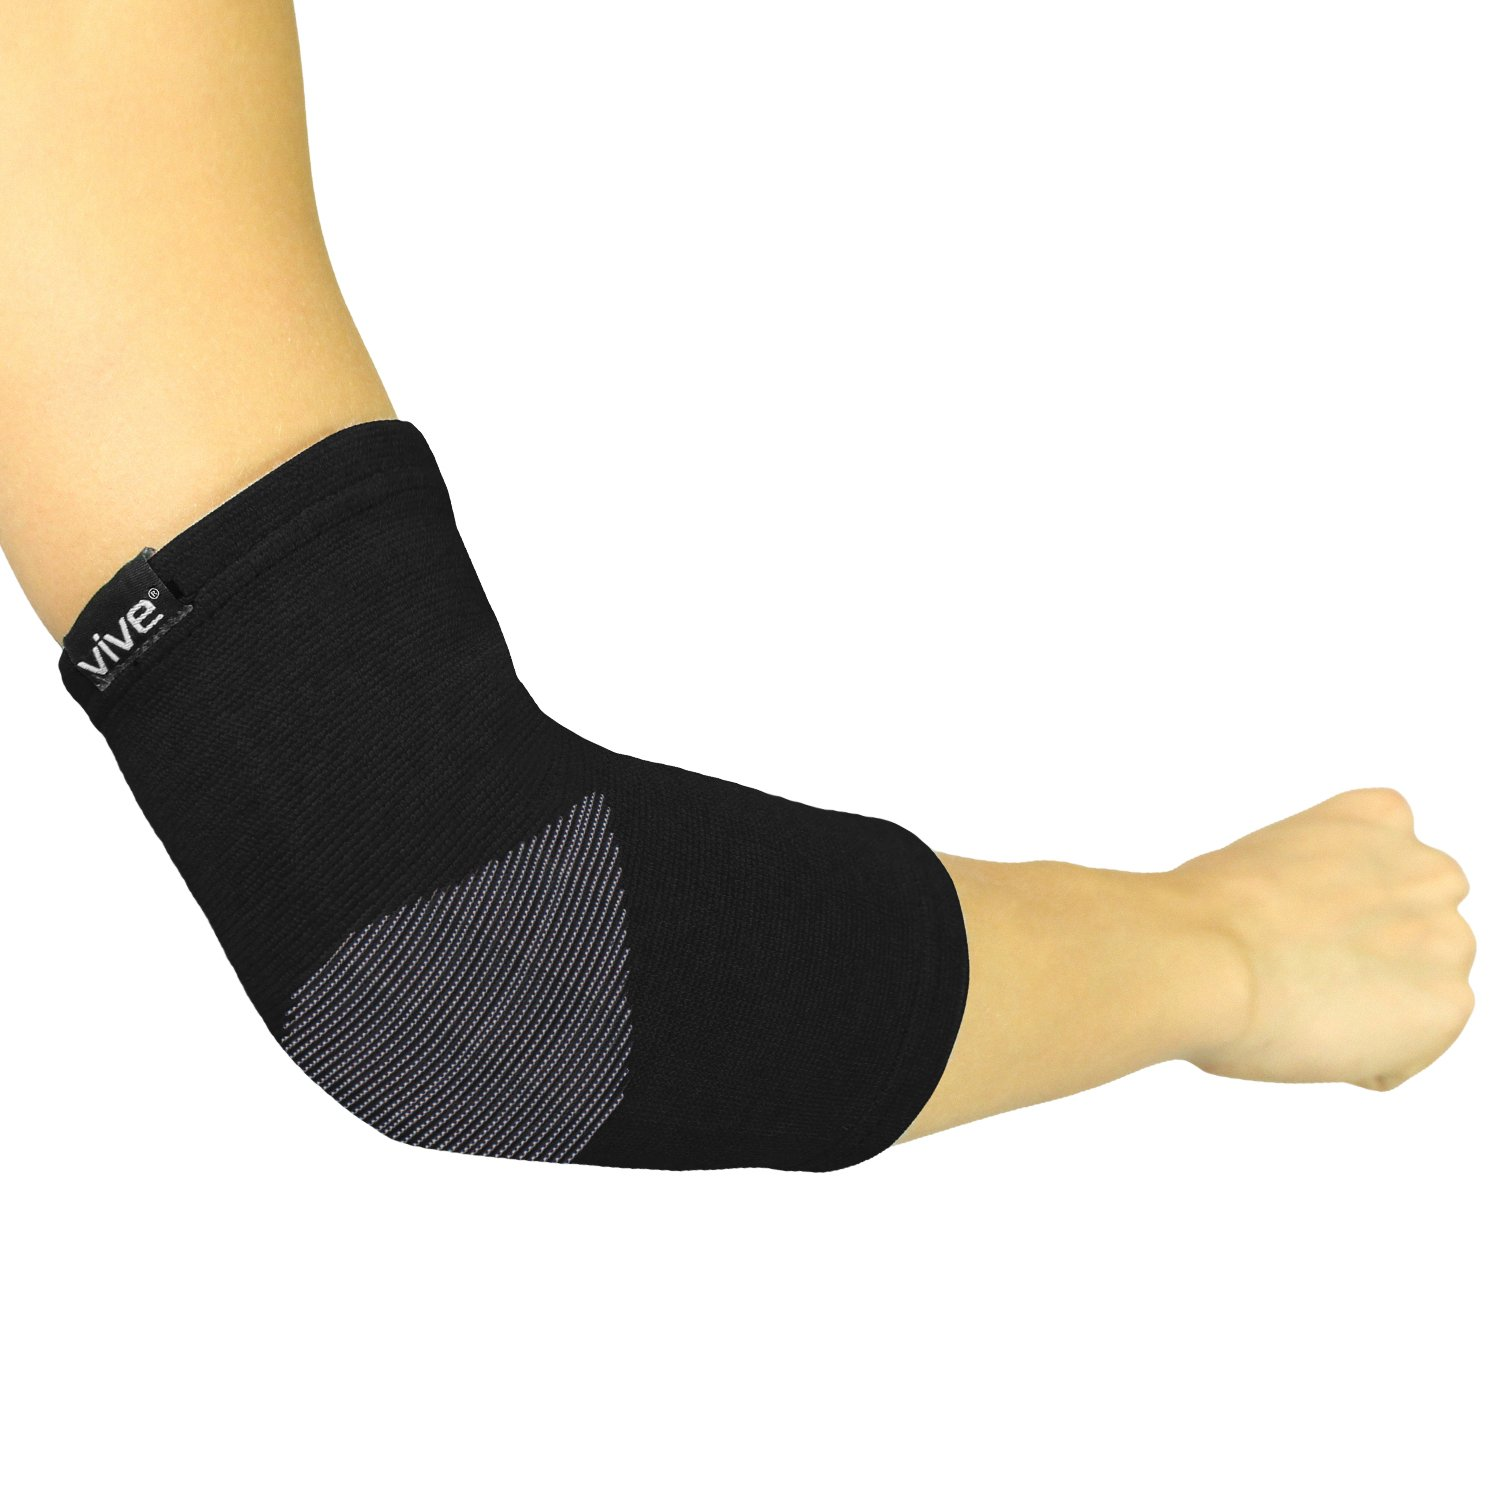 Elbow Sleeve by Vive (Pair) - Bamboo Charcoal Compression Elbow Support for Tendonitis, Golfers and Tennis Elbow - Men and Women (Black, Large/X-Large)